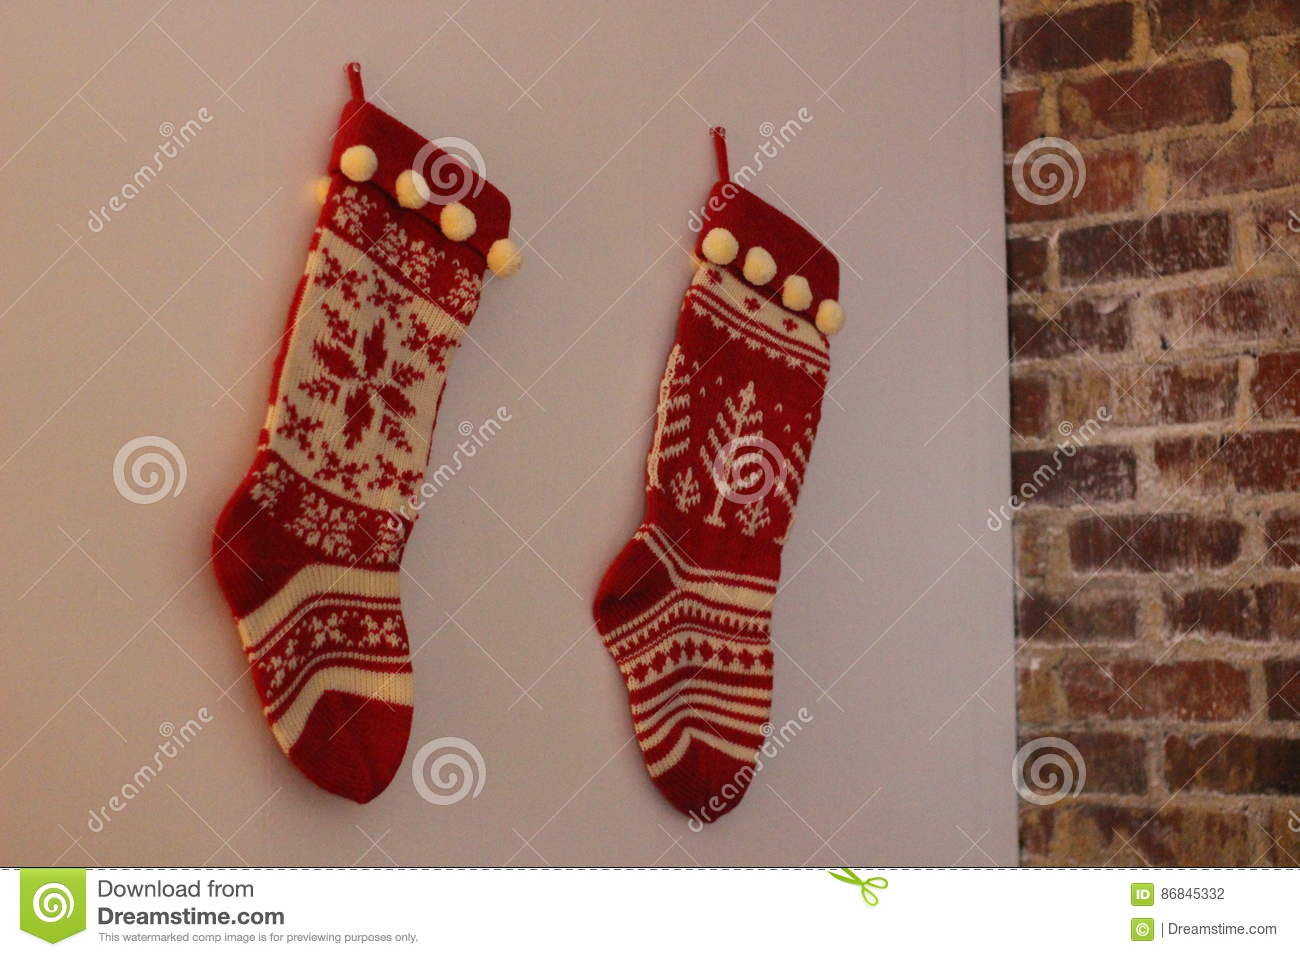 two red and white sweater christmas stockings hung by the chimney waiting for santa - Sweater Christmas Stockings